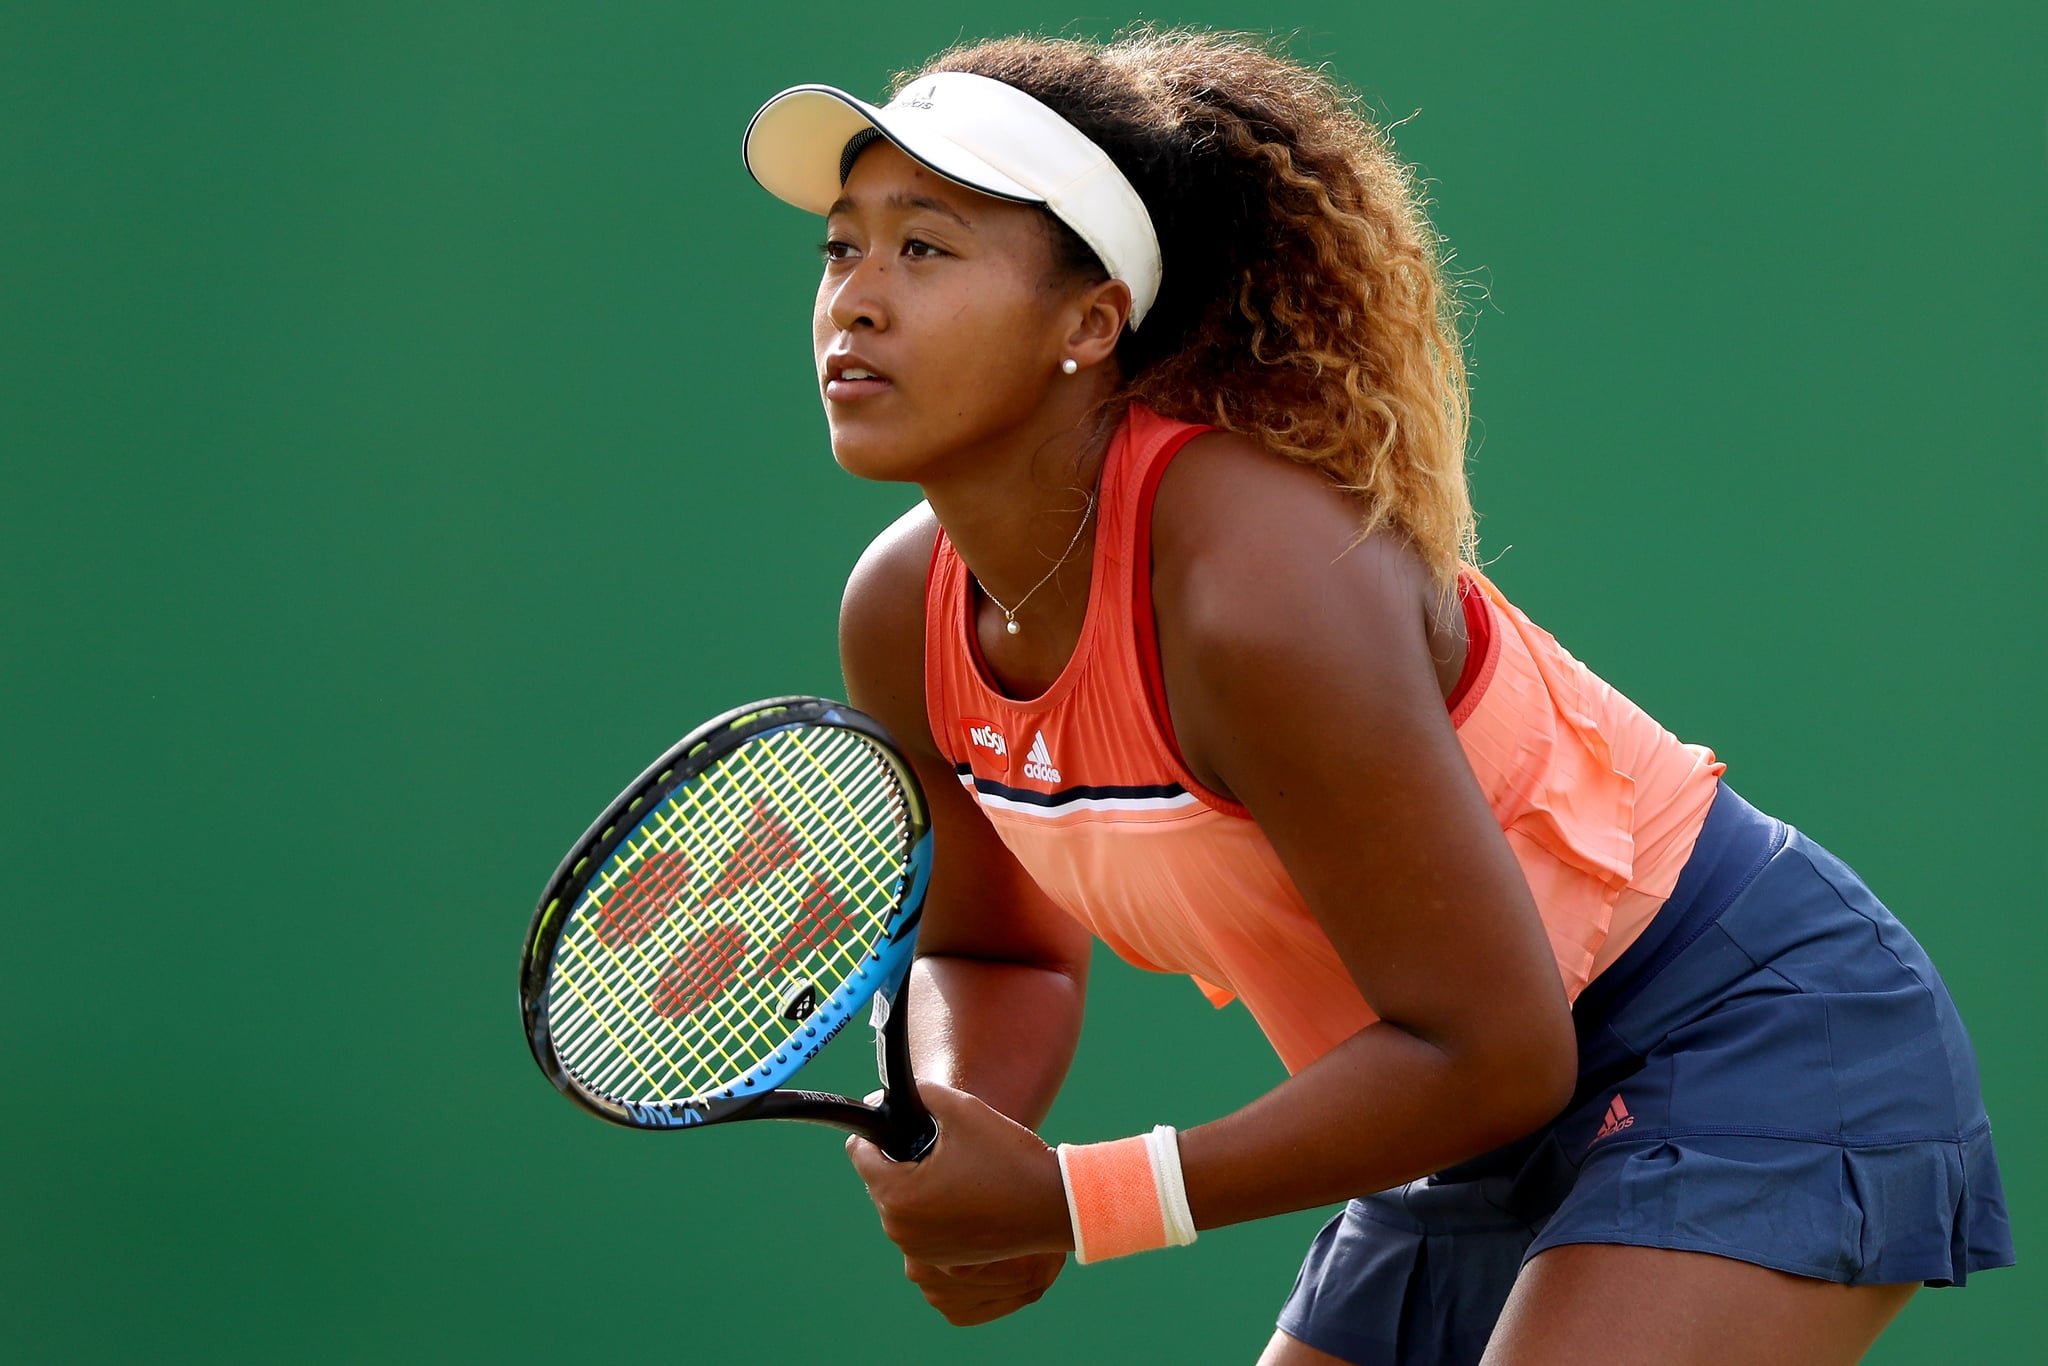 NOTTINGHAM, ENGLAND - JUNE 13:  Naomi Osaka of Japan plays Denisa Allertova of Czech Republic during Day five of the Nature Valley Open at Nottingham Tennis Centre on June 13, 2018 in Nottingham, United Kingdom.  (Photo by Matthew Stockman/Getty Images)